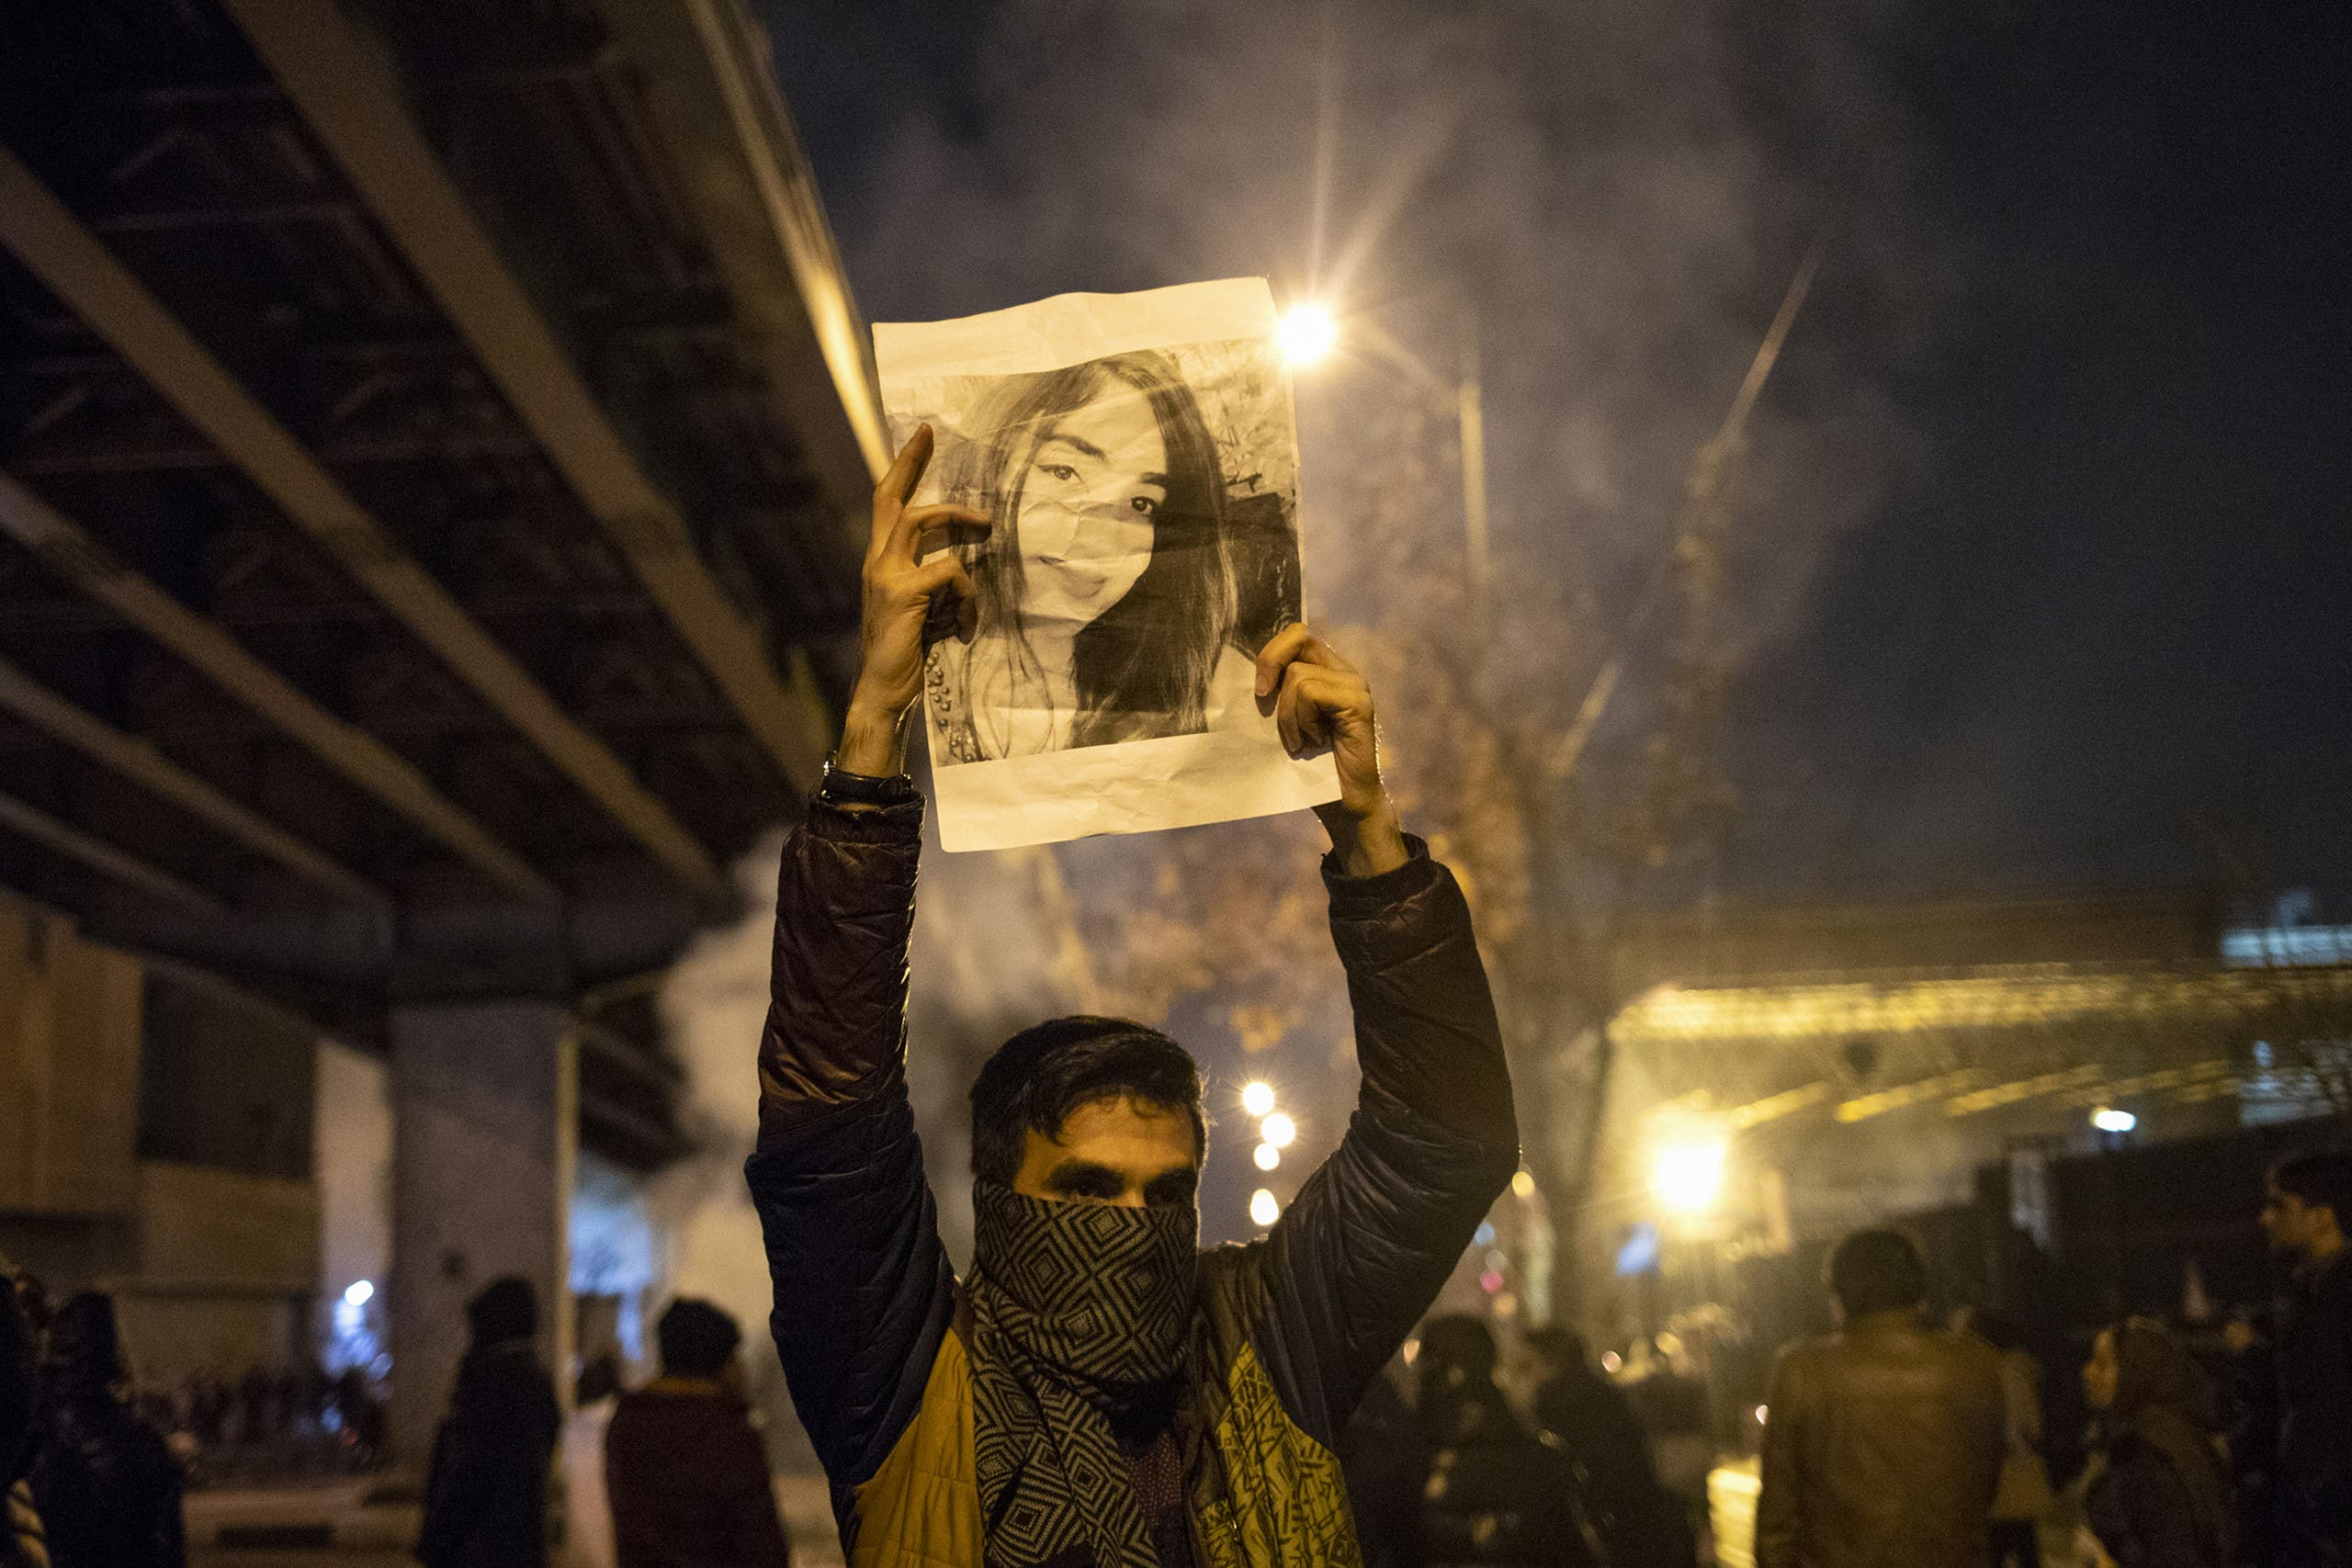 An Iranian man holds a picture of a victim of the Ukrainian plane downing during a demonstration in Tehran on January 11, 2020. (File photo: AP)